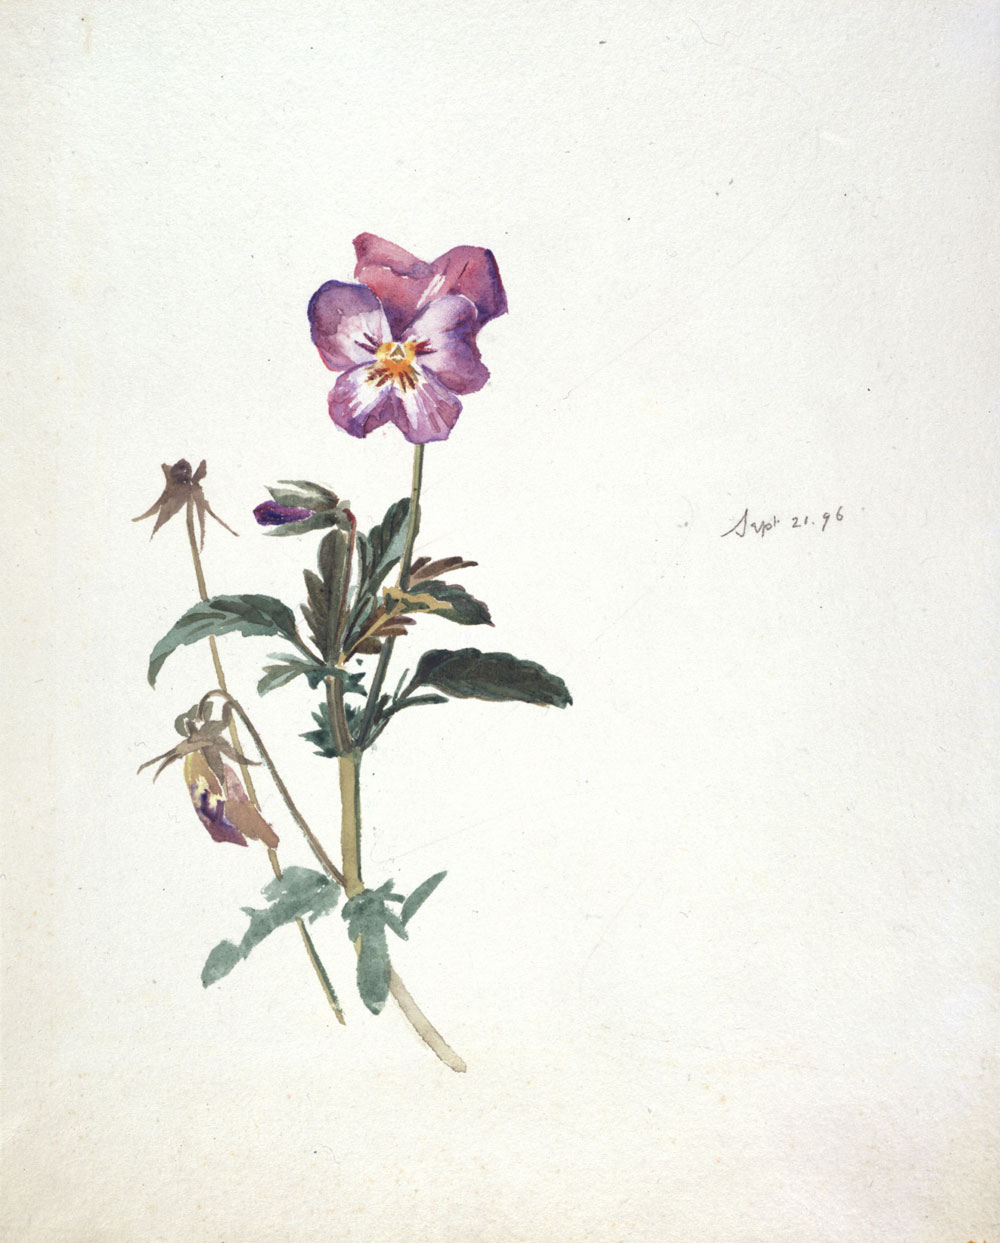 Beatrix Potter. Pansy (botanical illustration). 21 September 1896. from Victoria and Albert Museum.